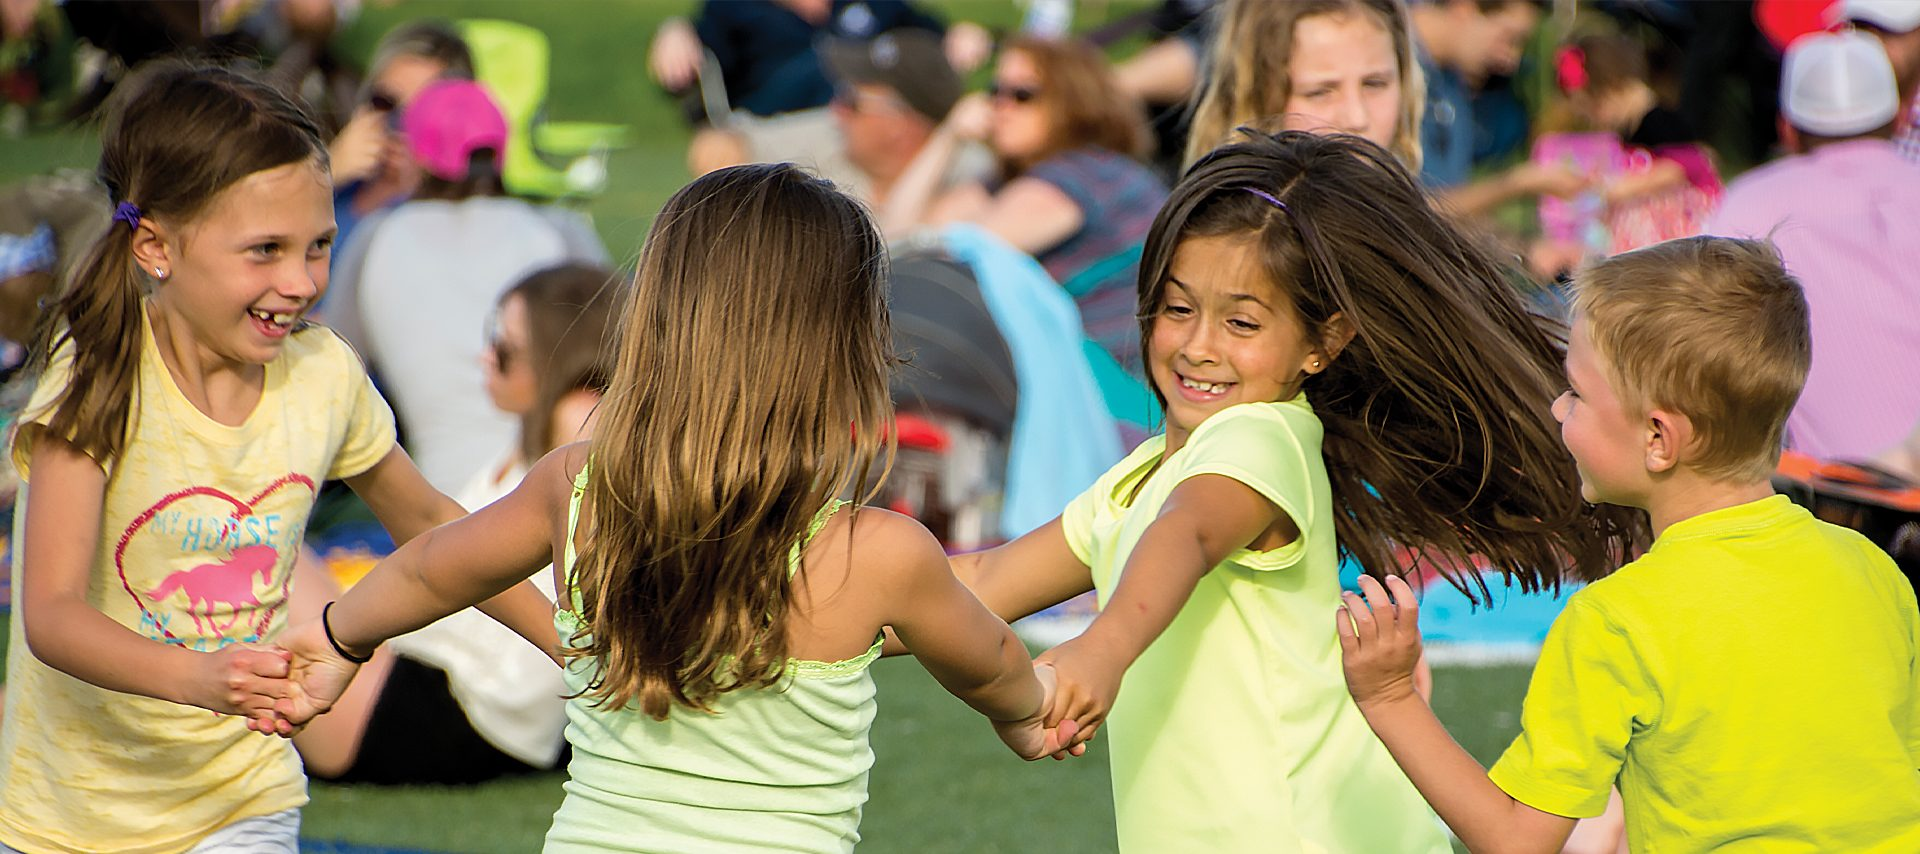 Kids dancing at an outdoor concert